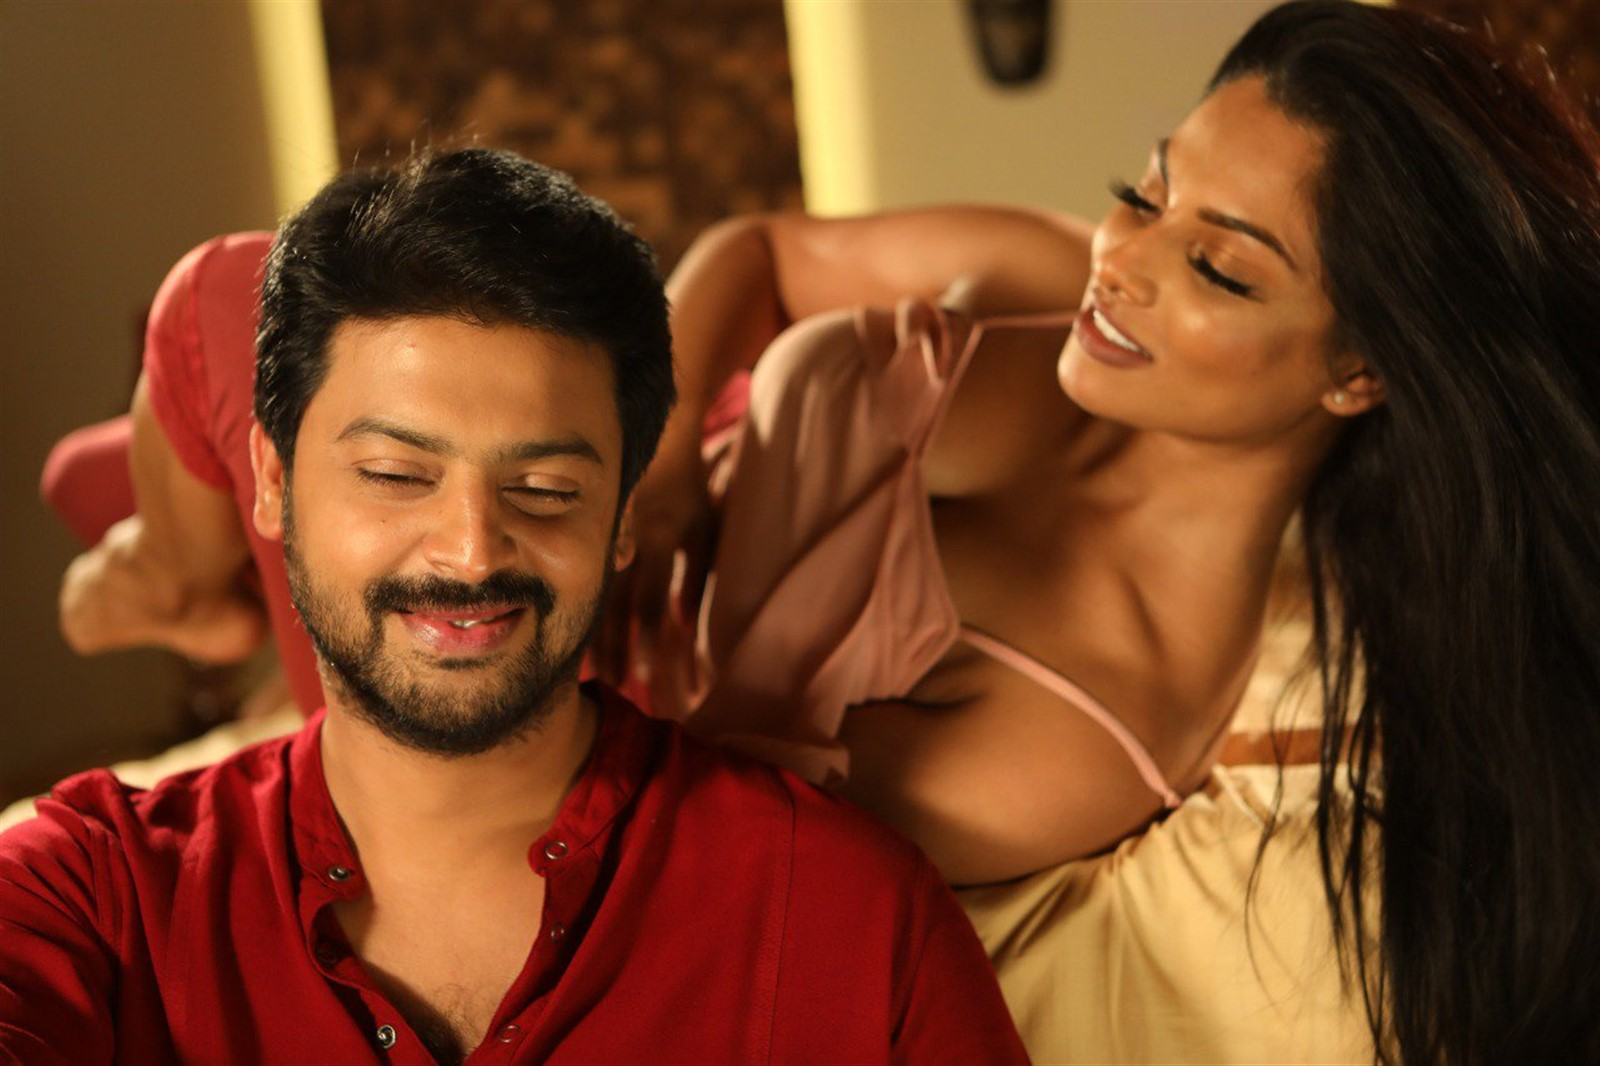 Srikanth Chandrika Ravi Un Kadhal Irundhal Movie Pics